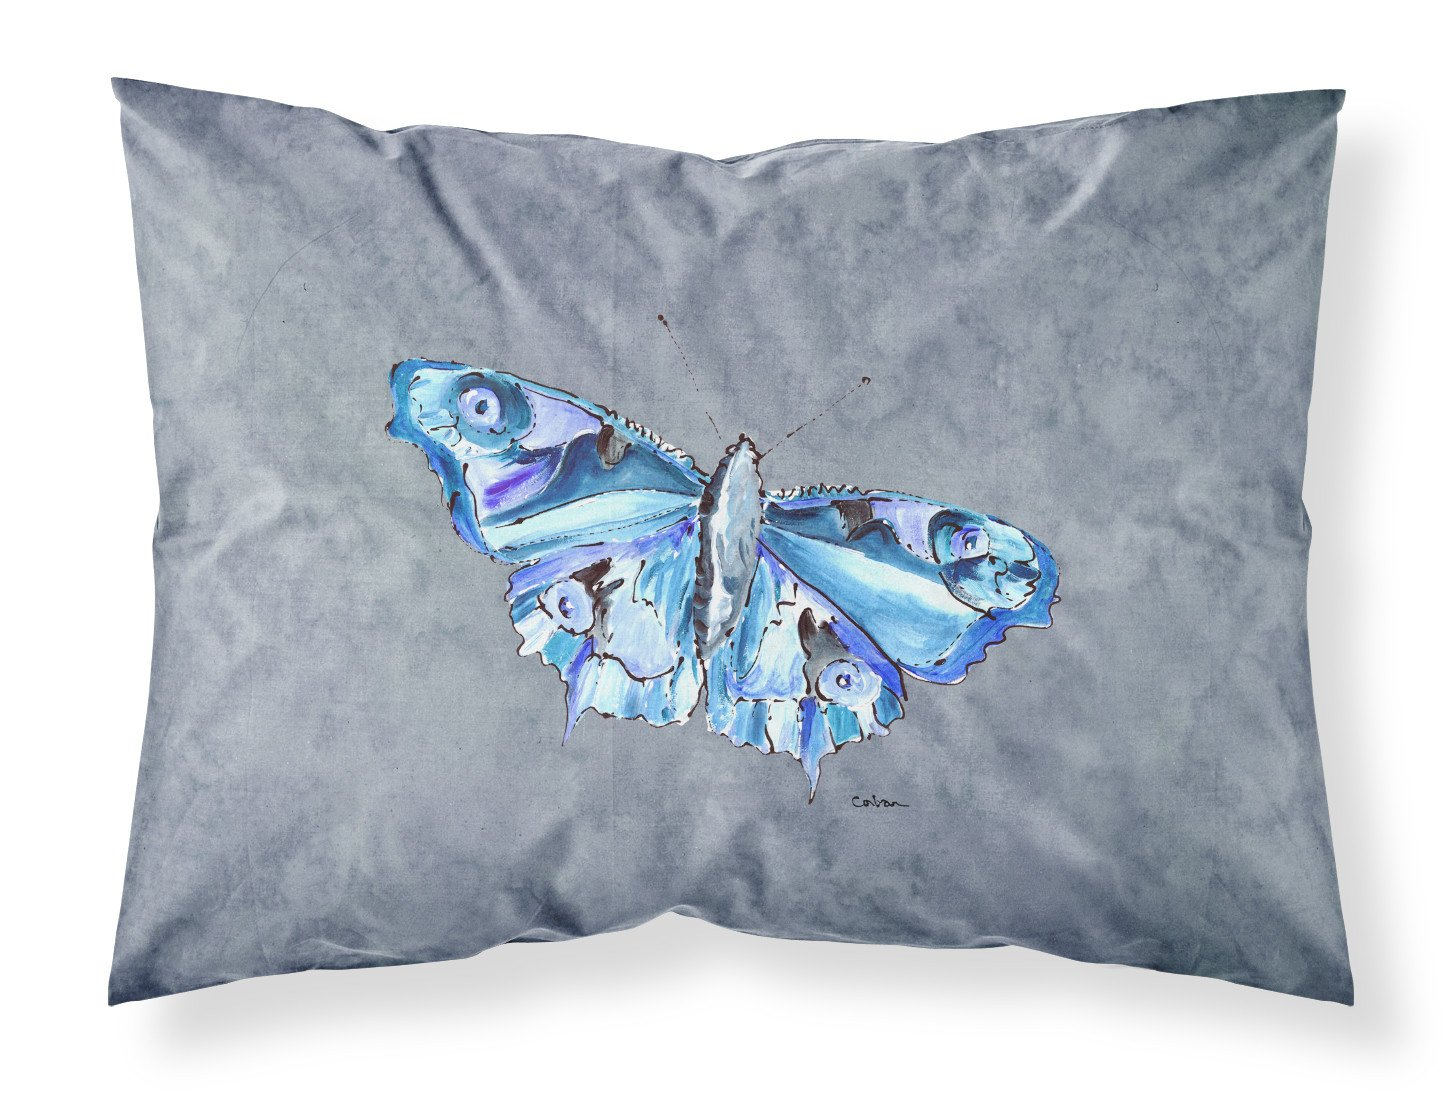 Buy this Butterfly on Gray Moisture wicking Fabric standard pillowcase